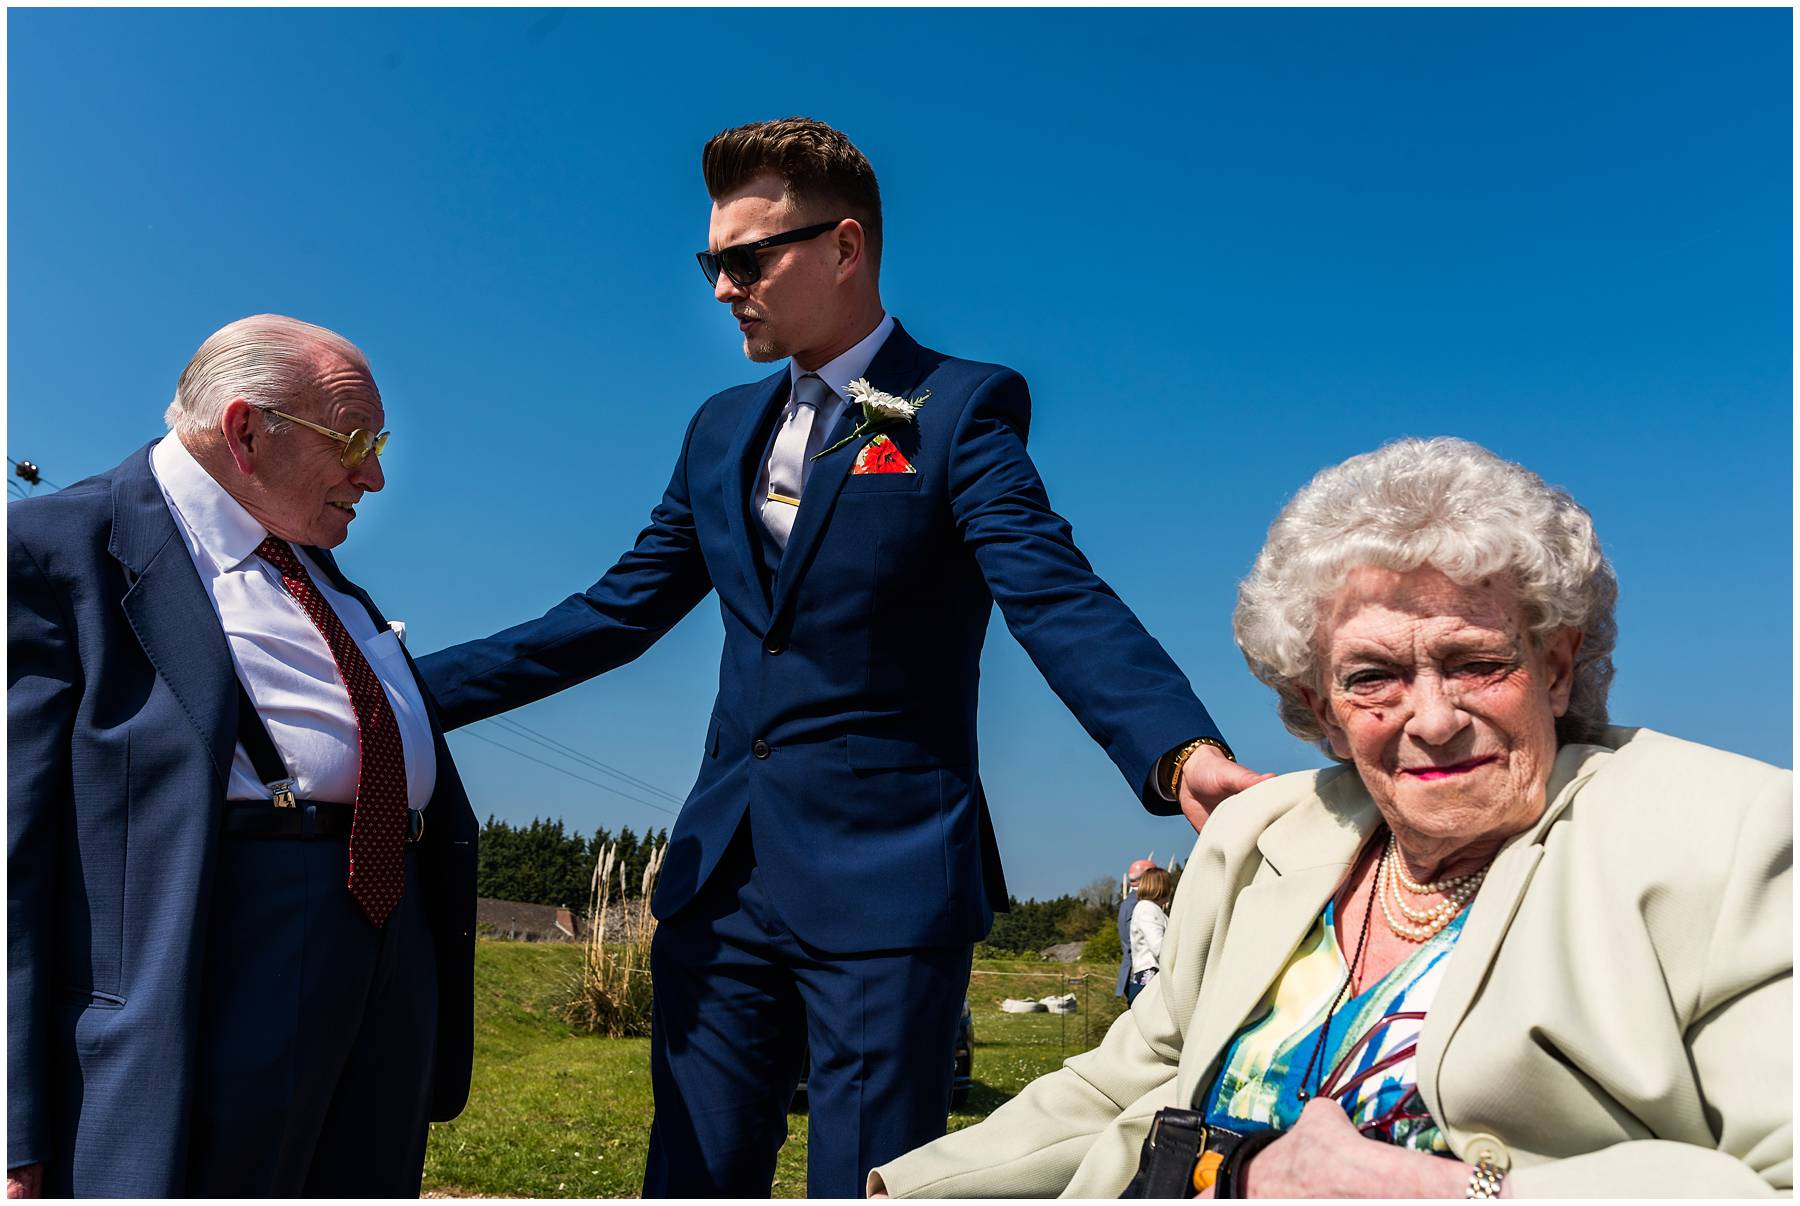 Documentary Wedding Photography in Kent